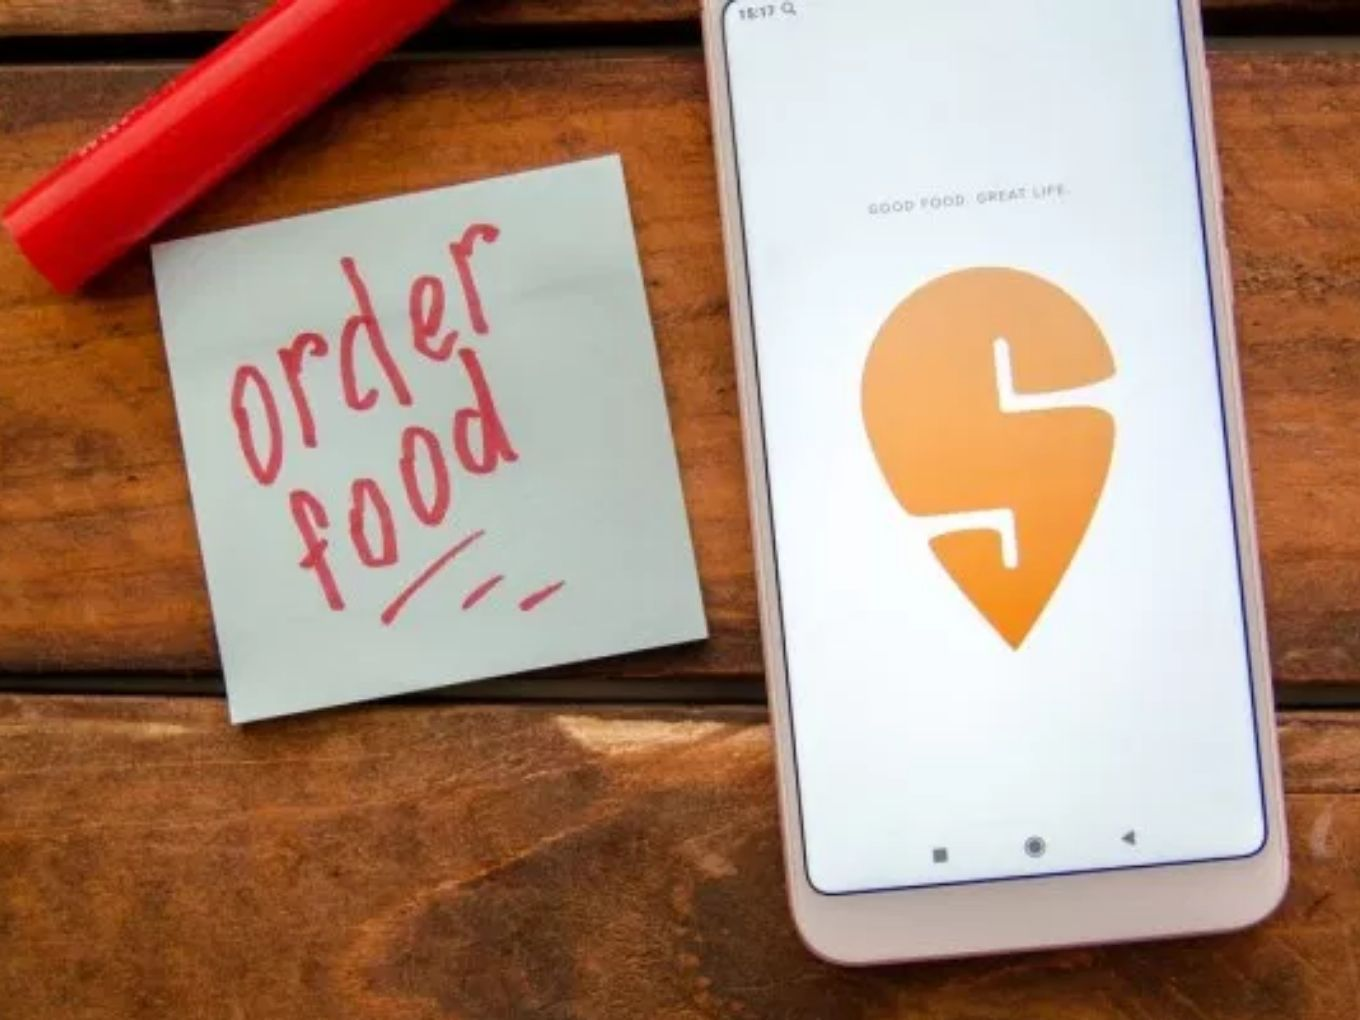 Swiggy raises $113 mn from investors led by Prosus